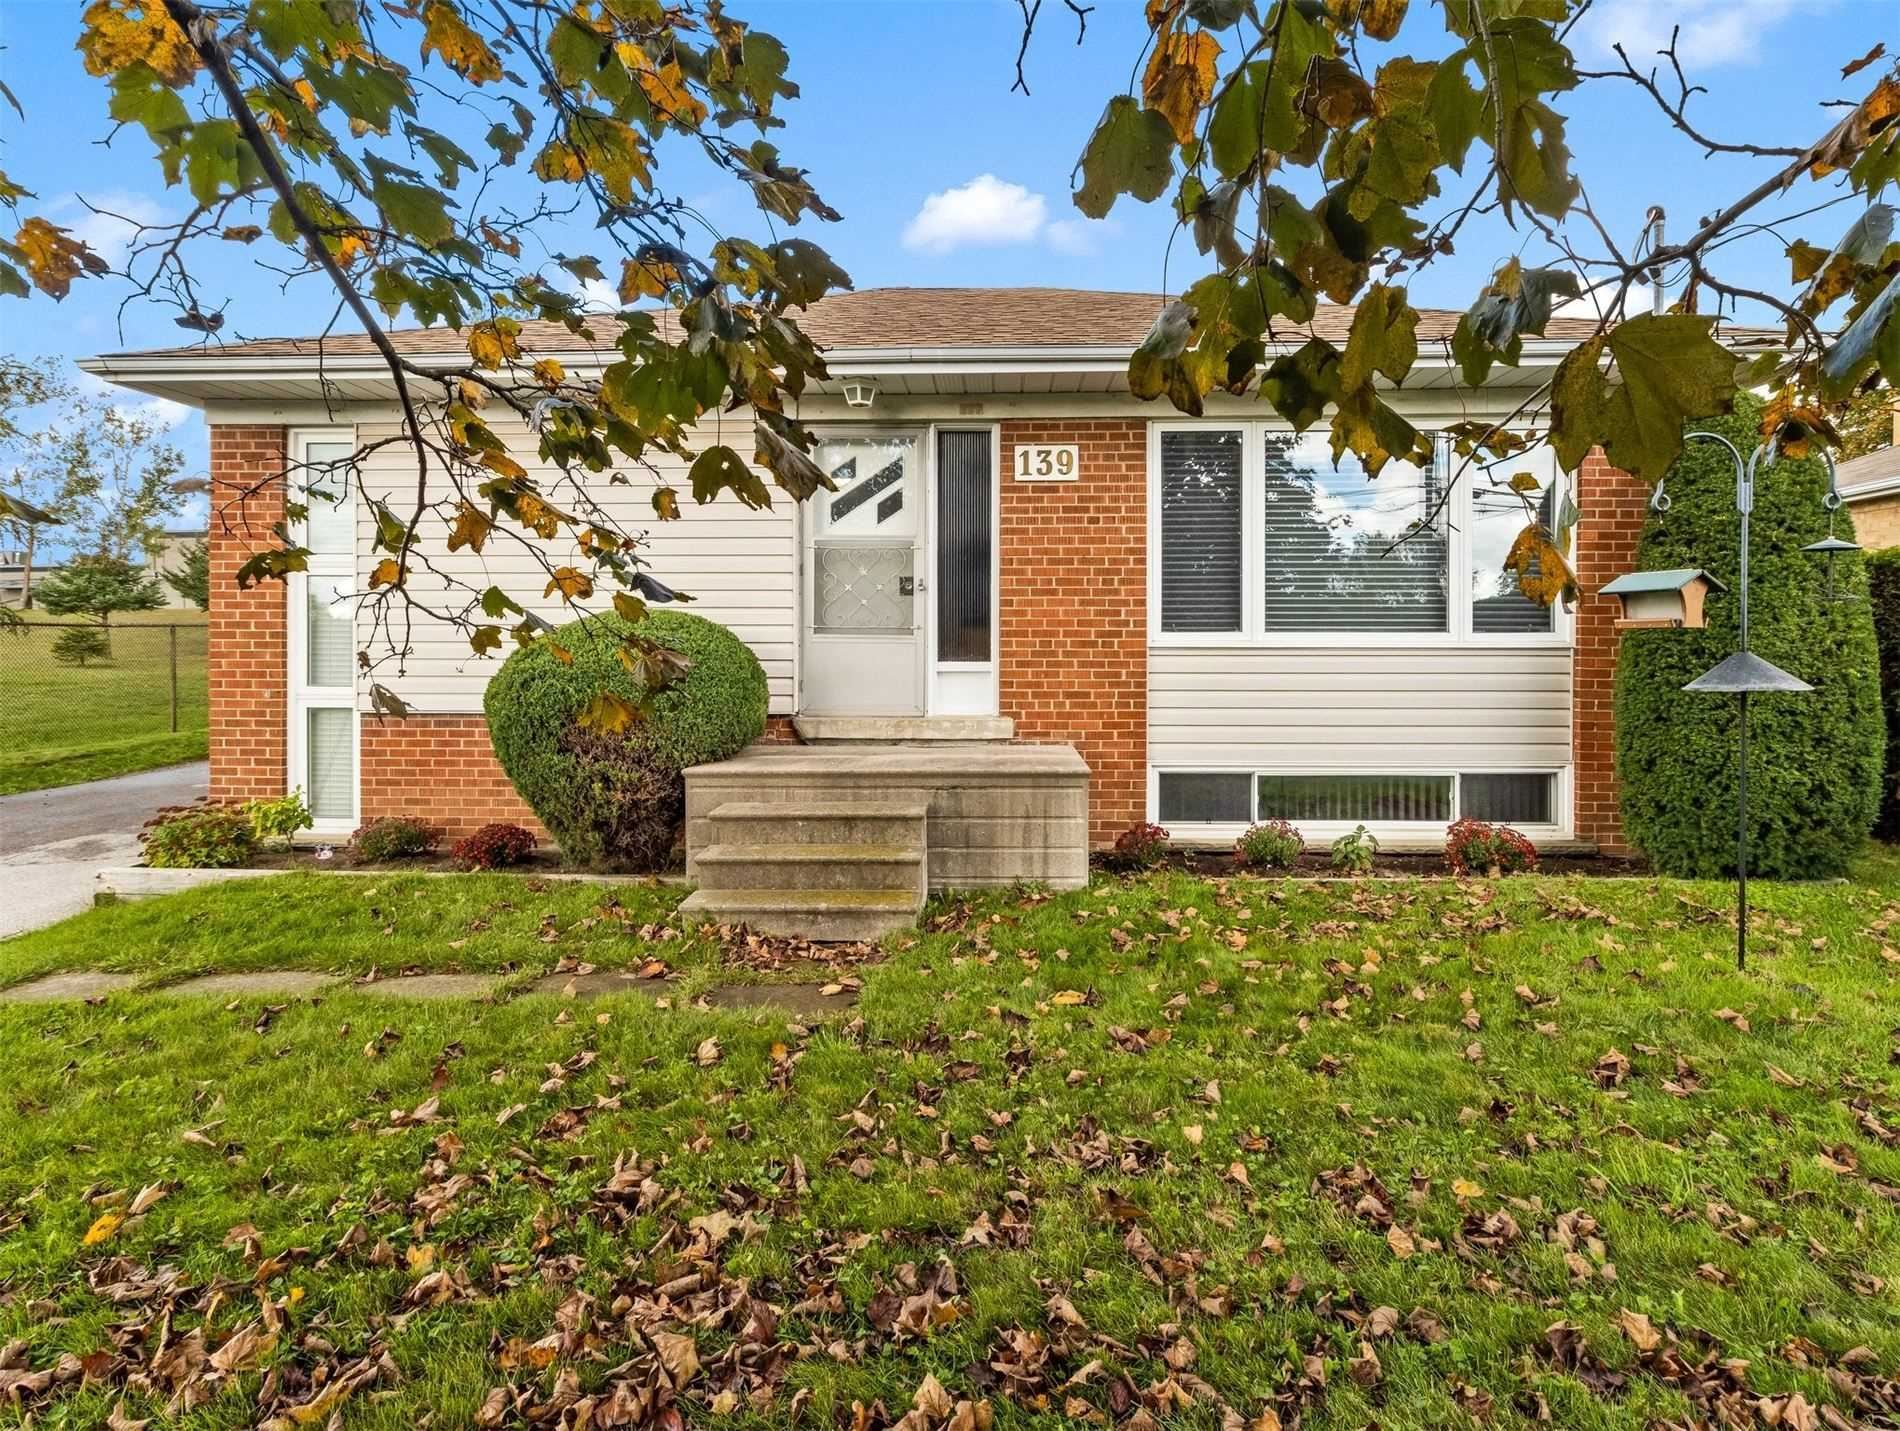 139 Queen St, Newmarket, ON L3Y2E9 - MLS#: N5409696